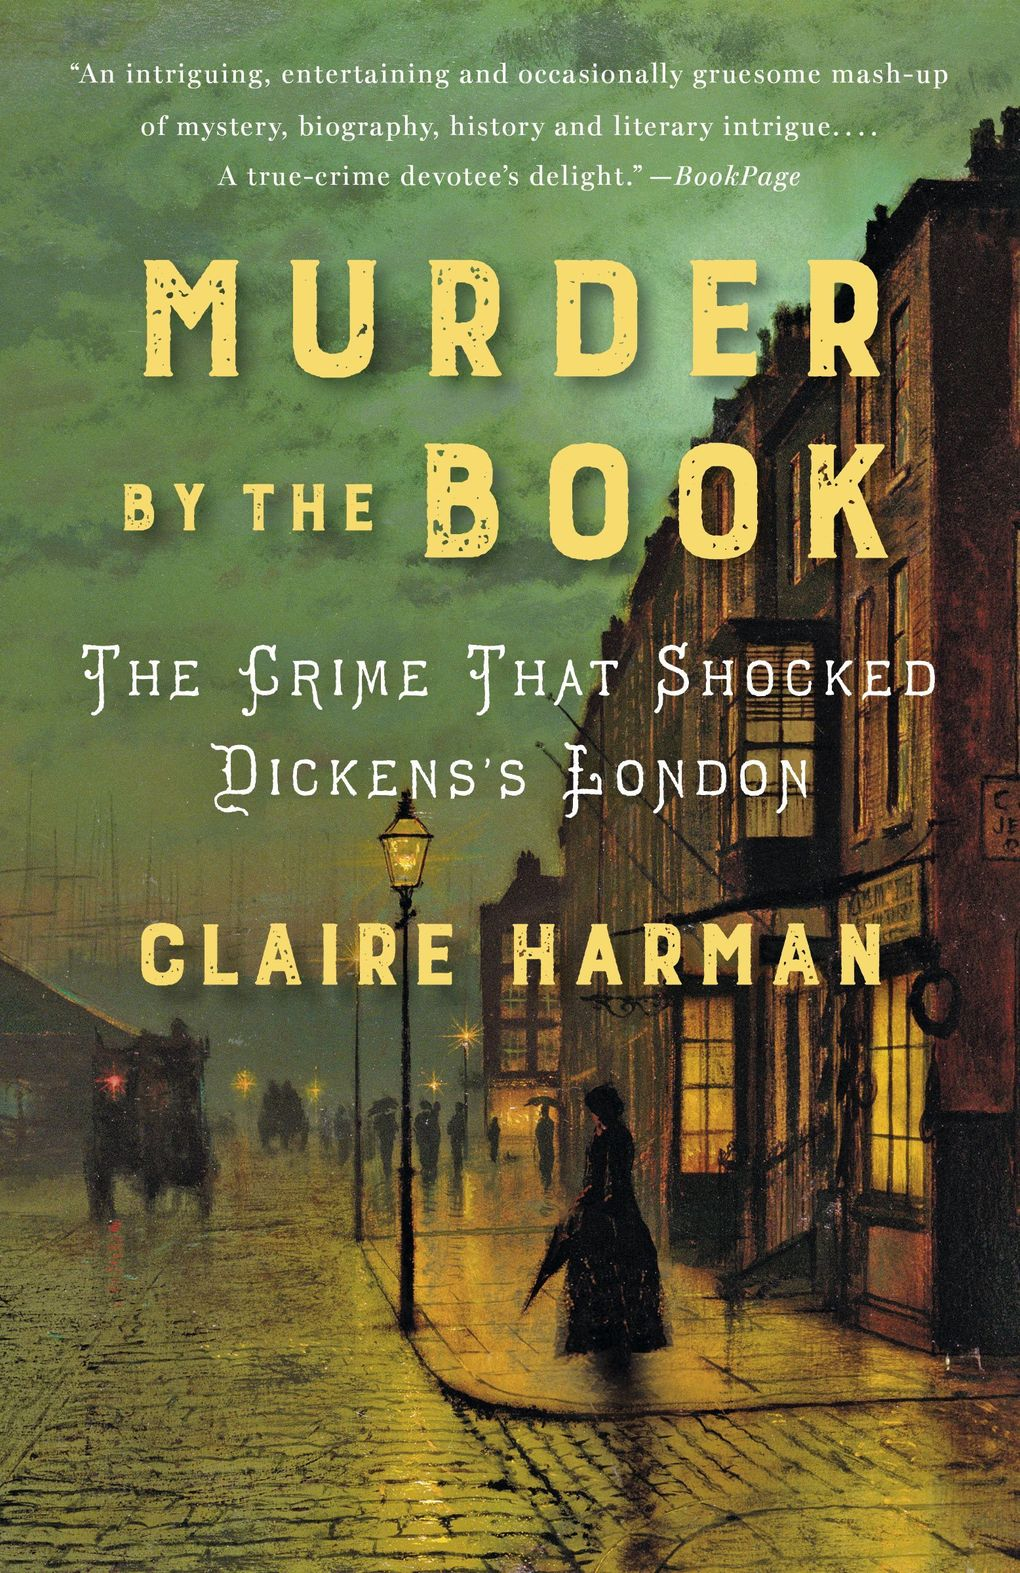 """""""Murder by the Book: The Crime That Shocked Dickens's London"""" by Claire Harman (Penguin Random House)"""